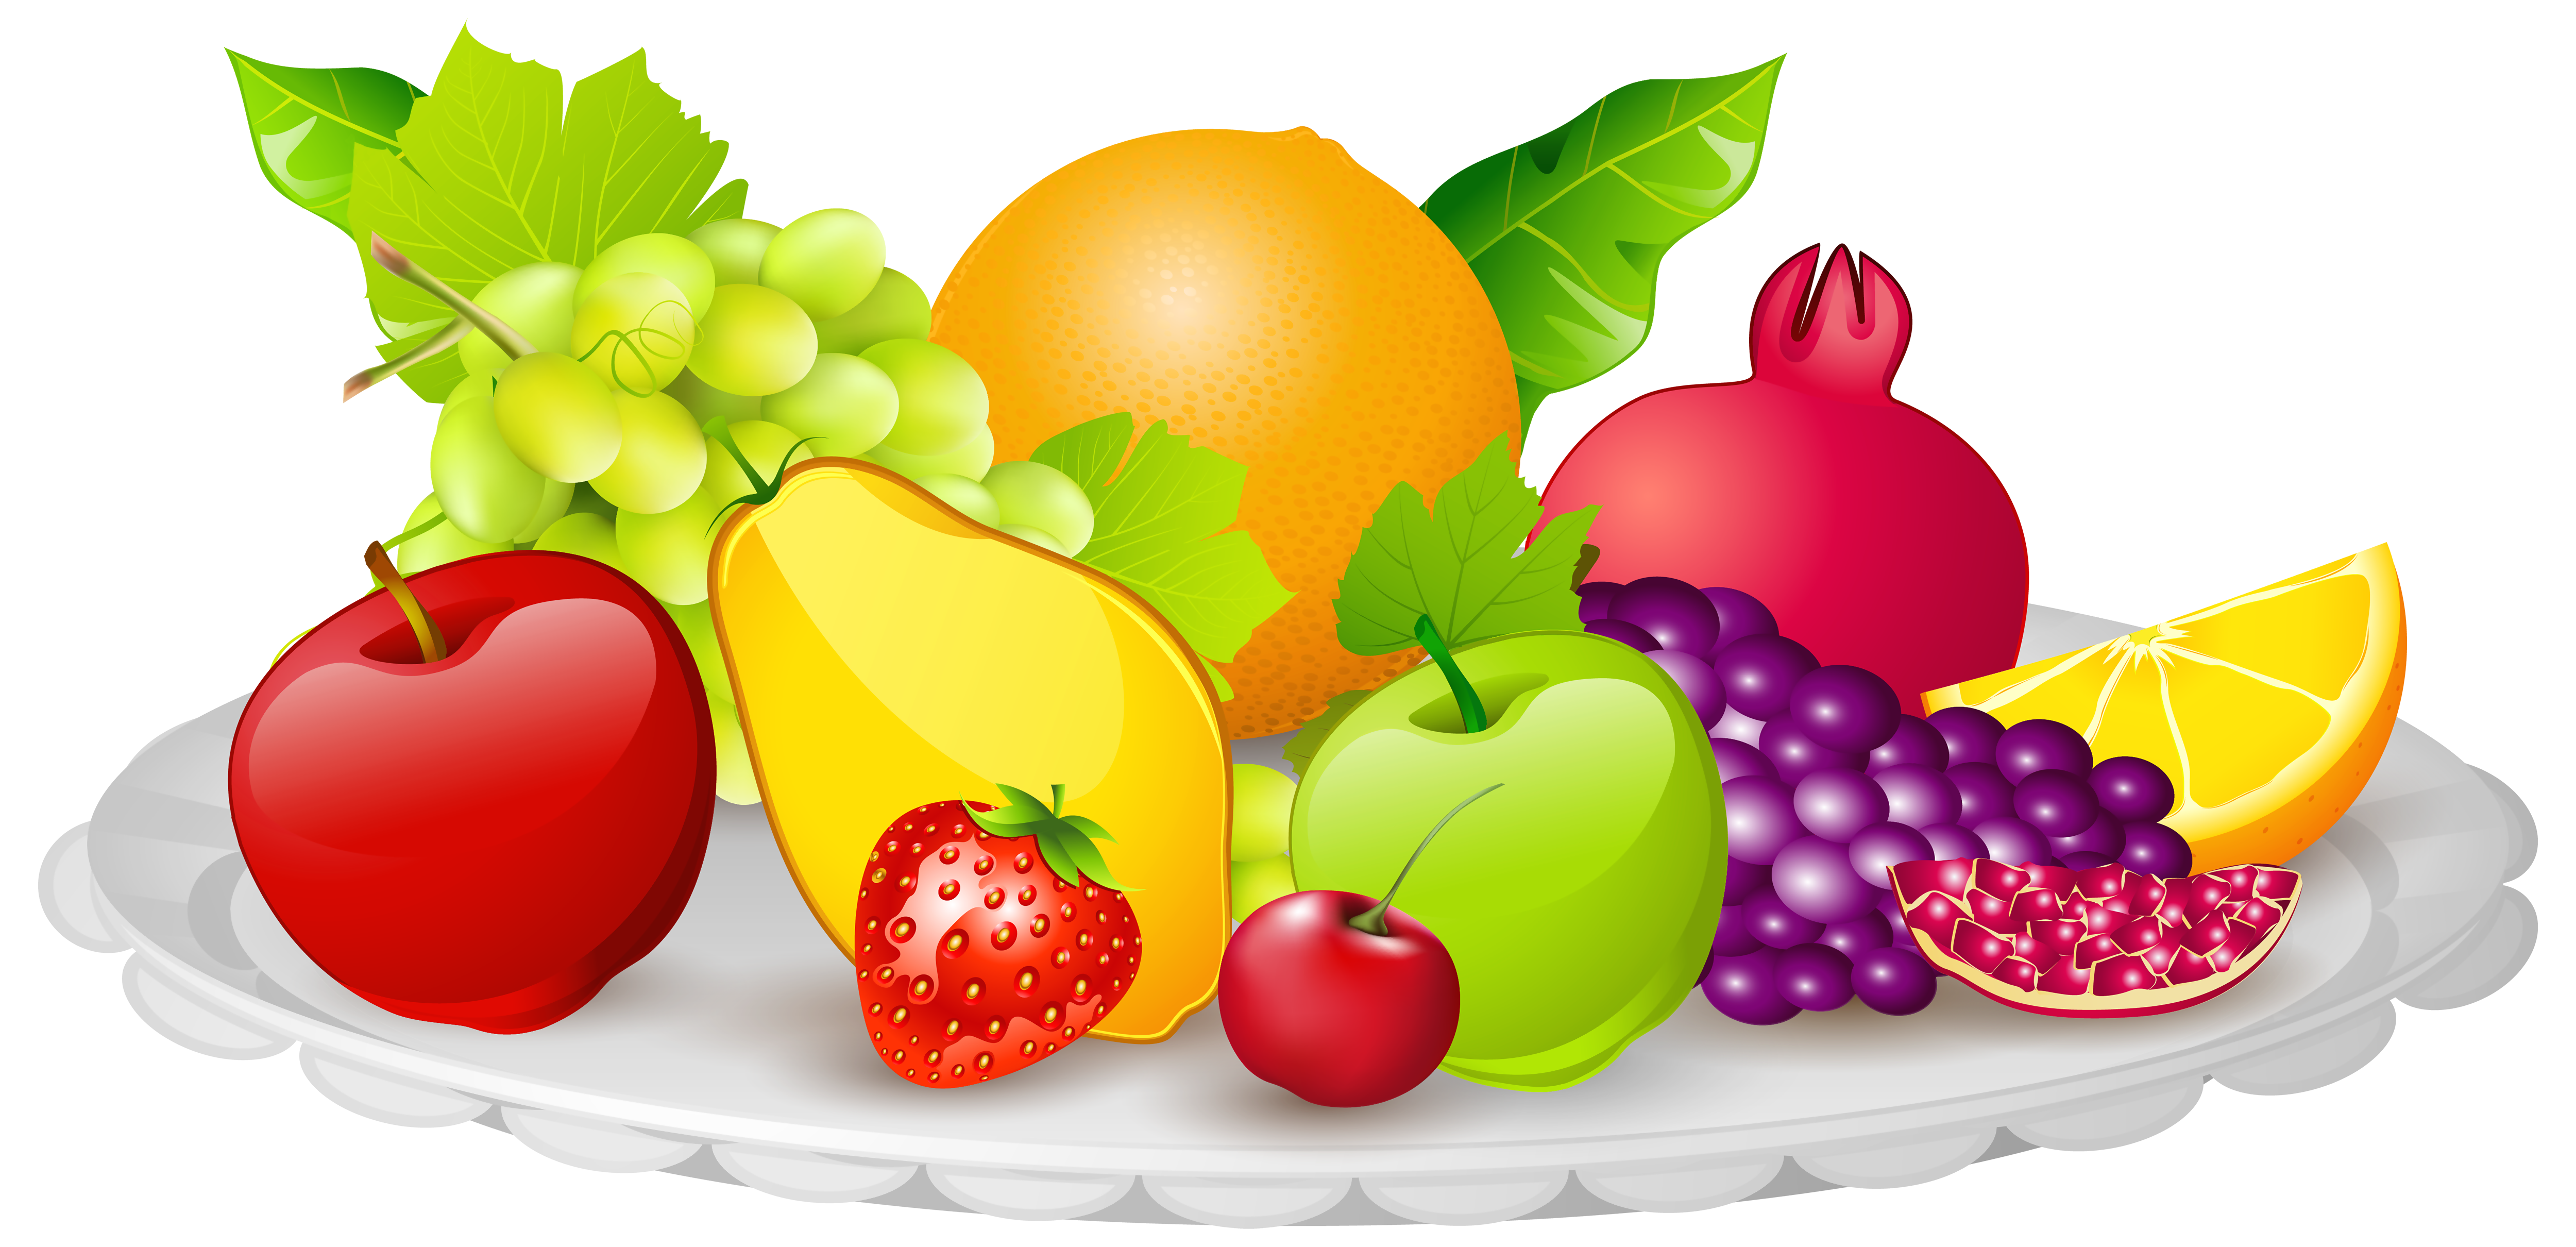 Apple word clipart vector Plate with Fruits PNG Clipart Image | Gallery Yopriceville - High ... vector